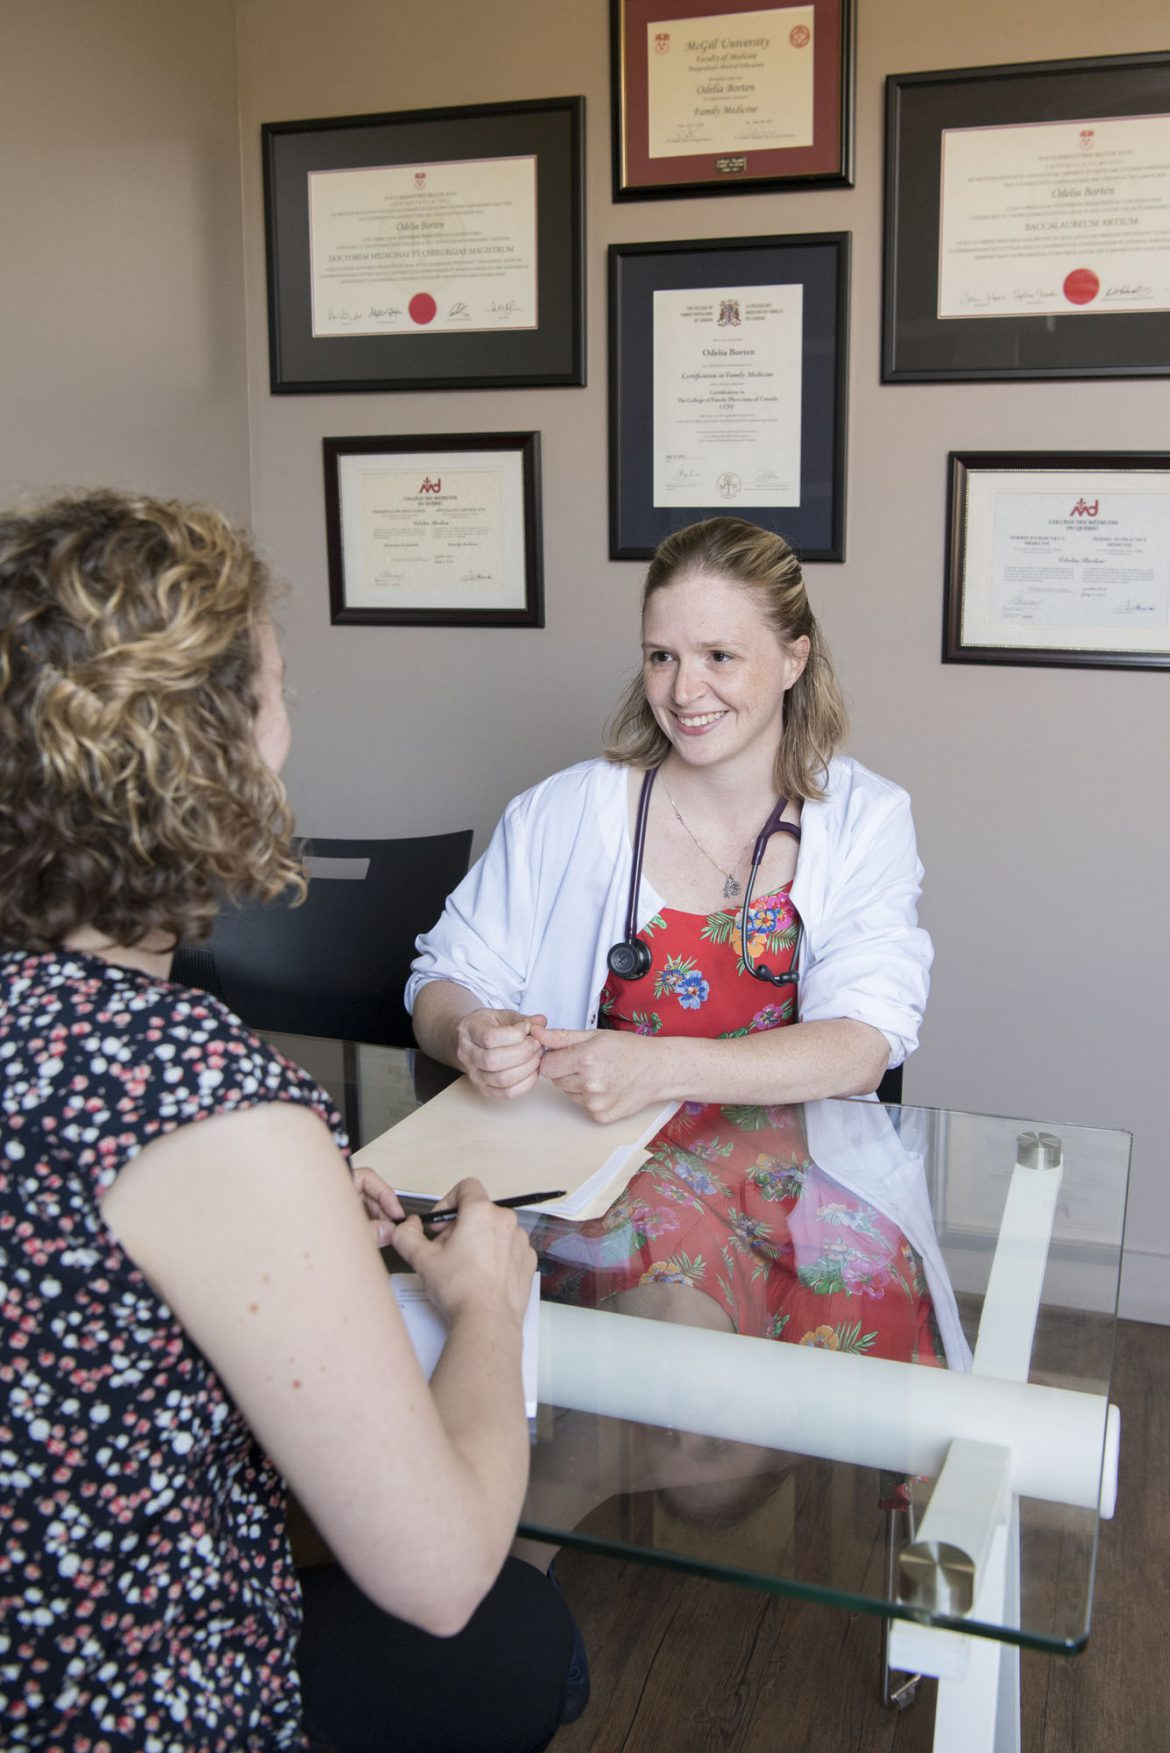 Family Physician Dr. Alex Orr (left) and Nurse Elizabeth Jack of Santé Kildare, a Family Medicine Group in Cote Saint-Luc that took on, last fall, 400 new patients who previously had no family doctor.